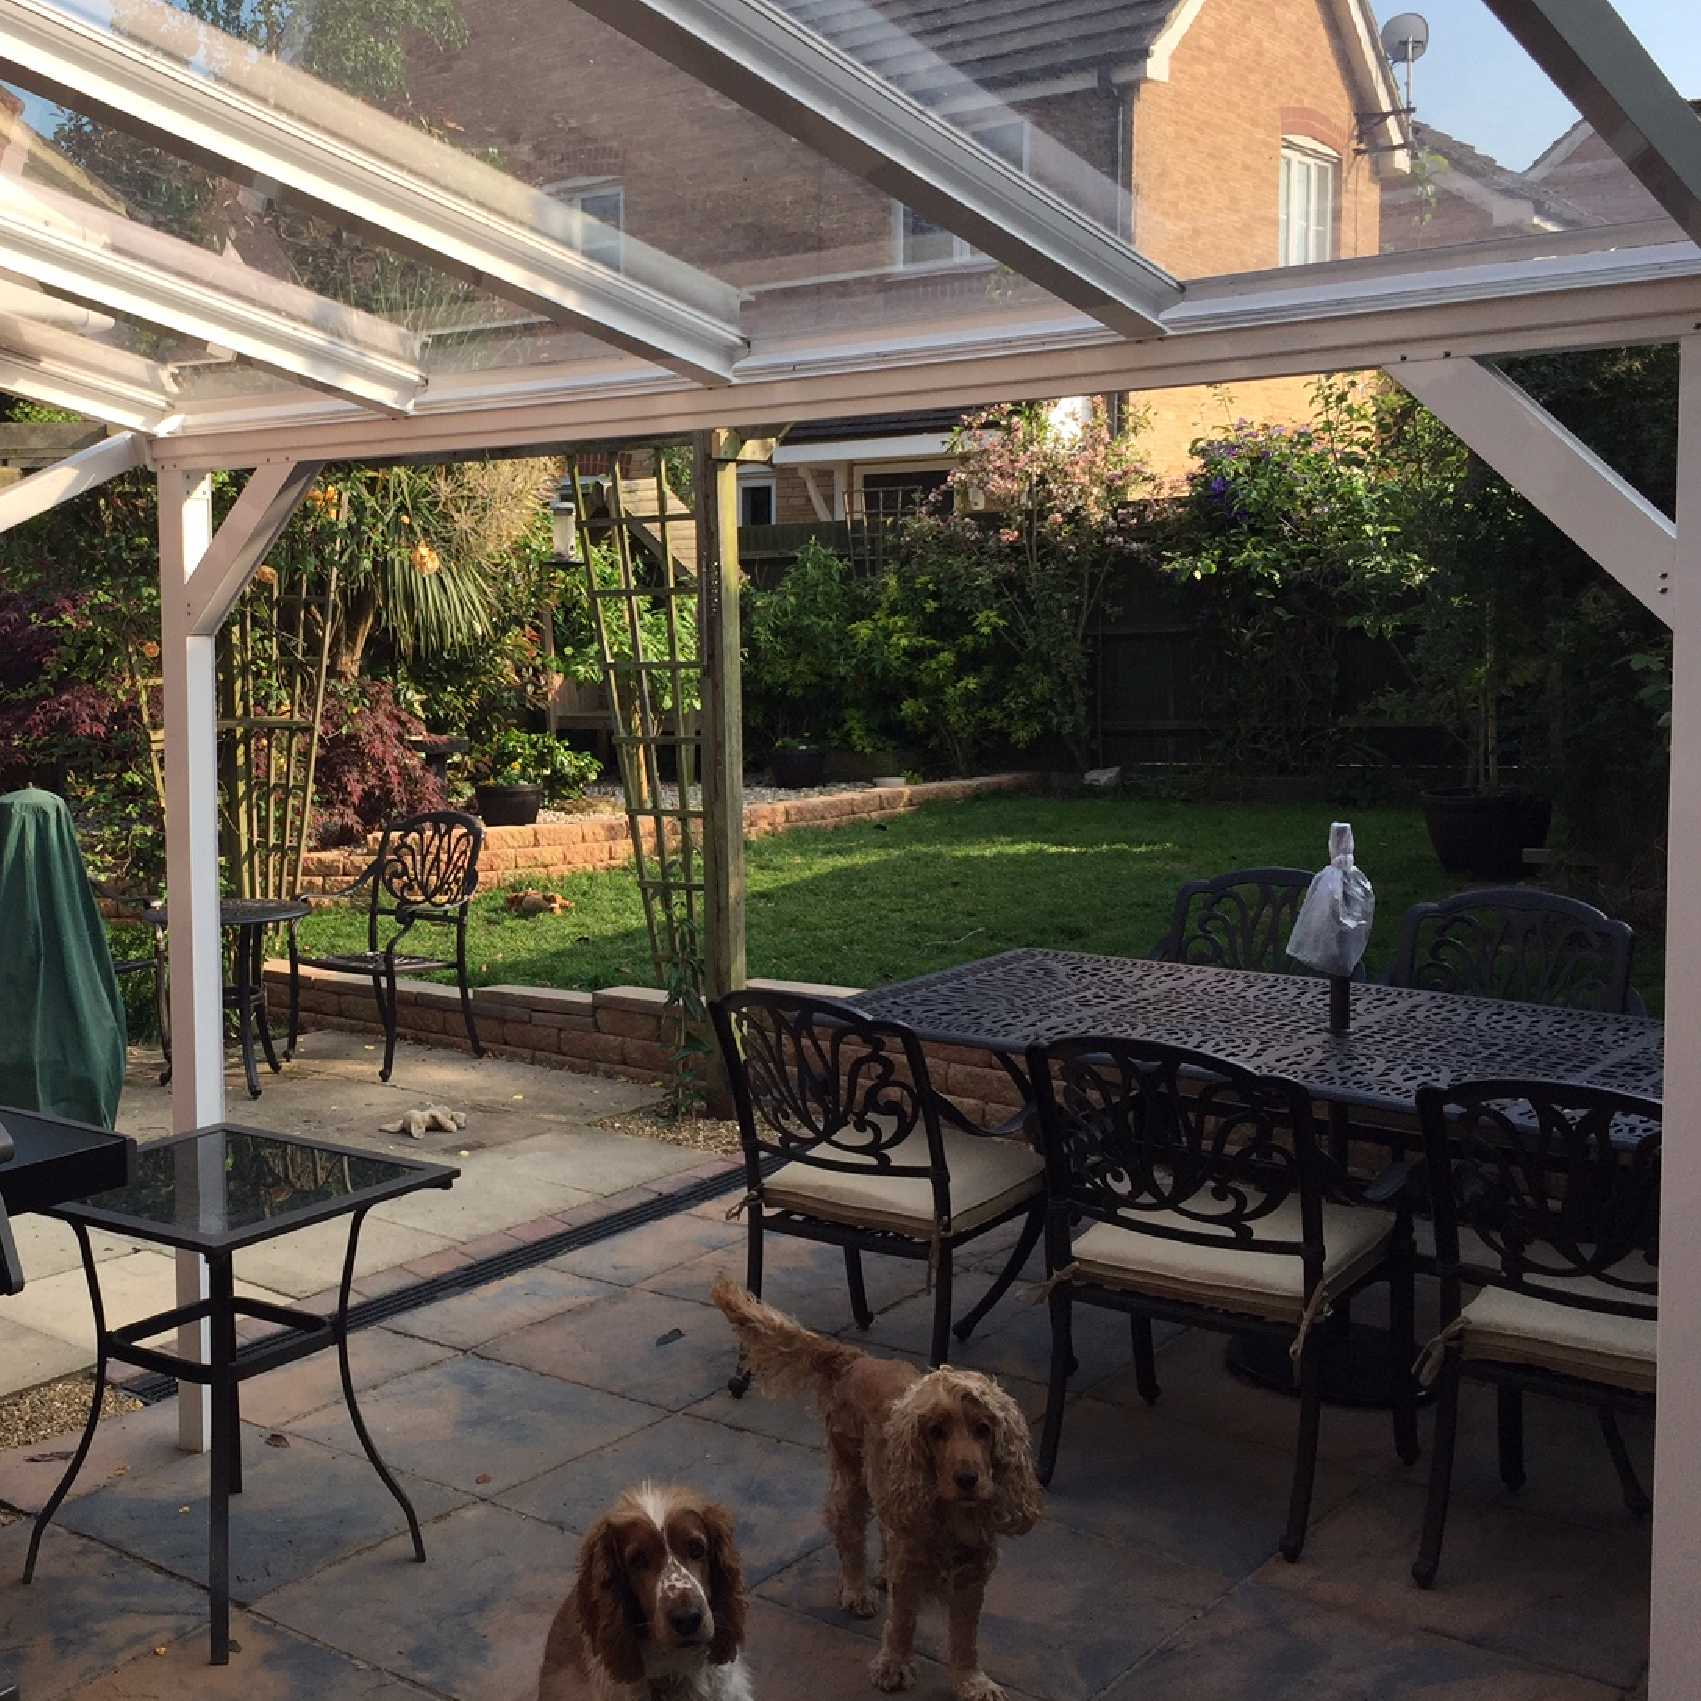 Affordable Omega Smart White Lean-To Canopy with 6mm Glass Clear Plate Polycarbonate Glazing - 2.1m (W) x 2.5m (P), (2) Supporting Posts